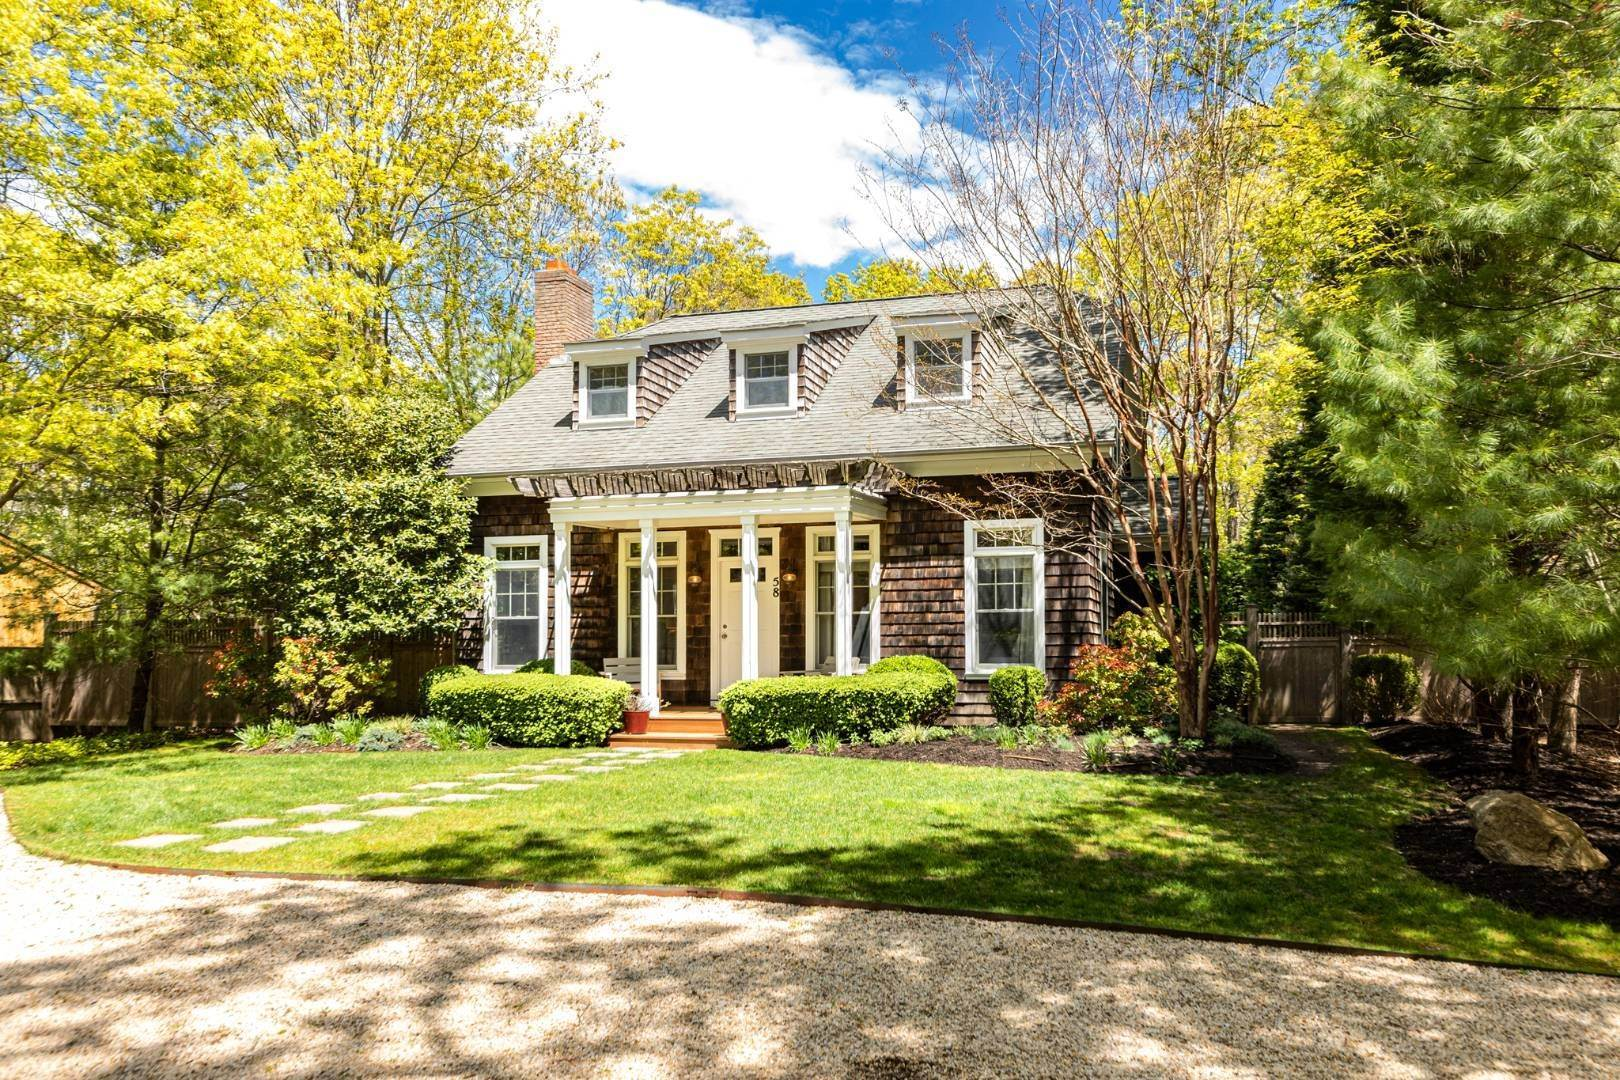 Single Family Home for Sale at Stylish Springs 58 Sycamore Drive, East Hampton, NY 11937